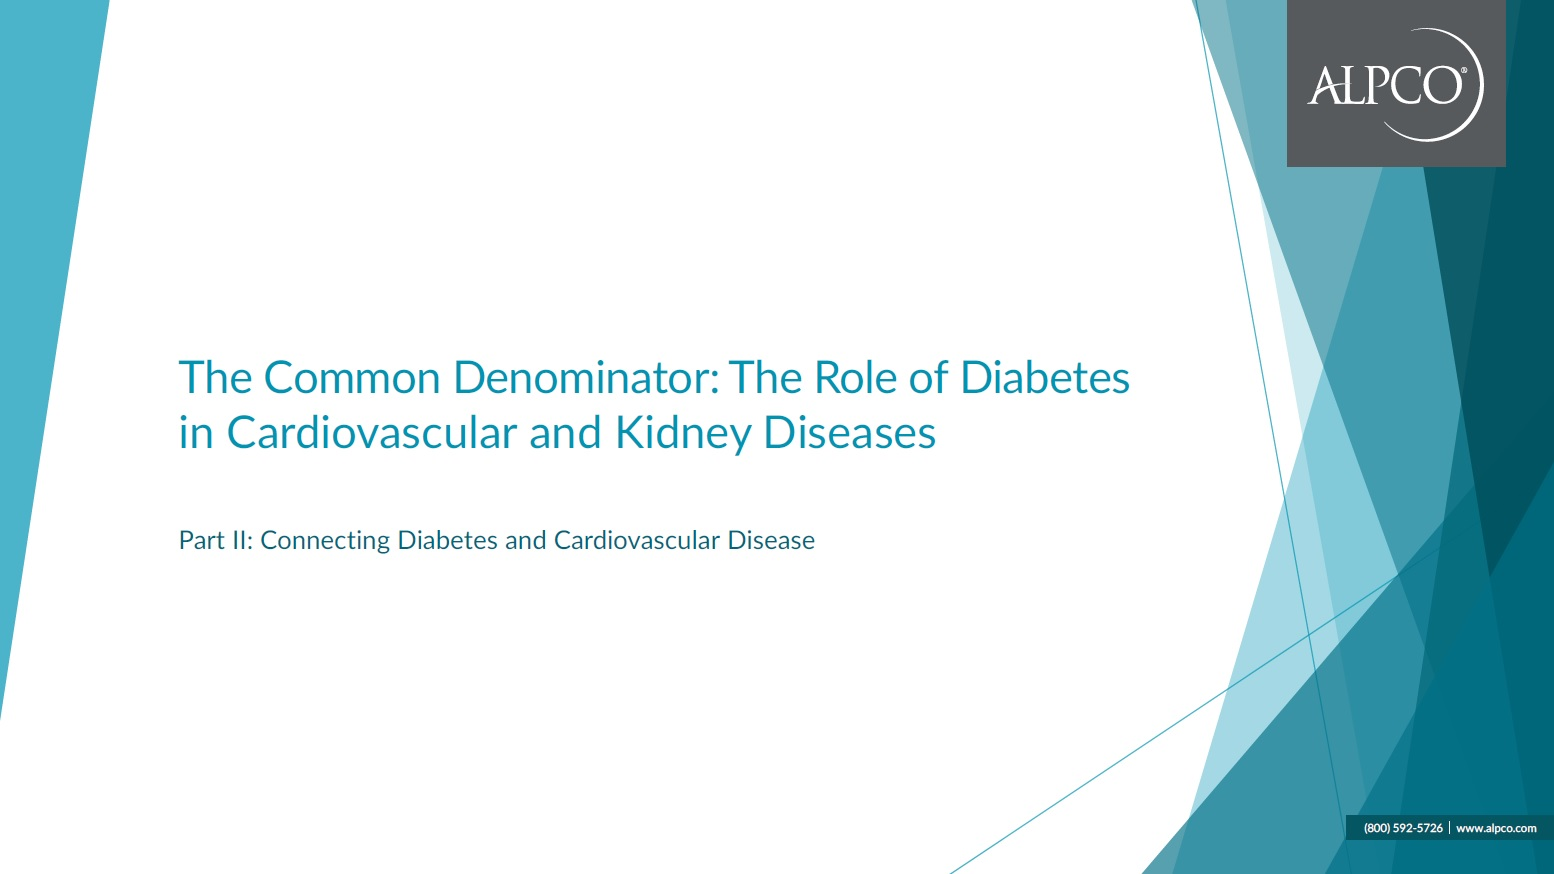 Click this preview to download our eBook and learn more about the use of heart disease biomarkers in diabetes research.